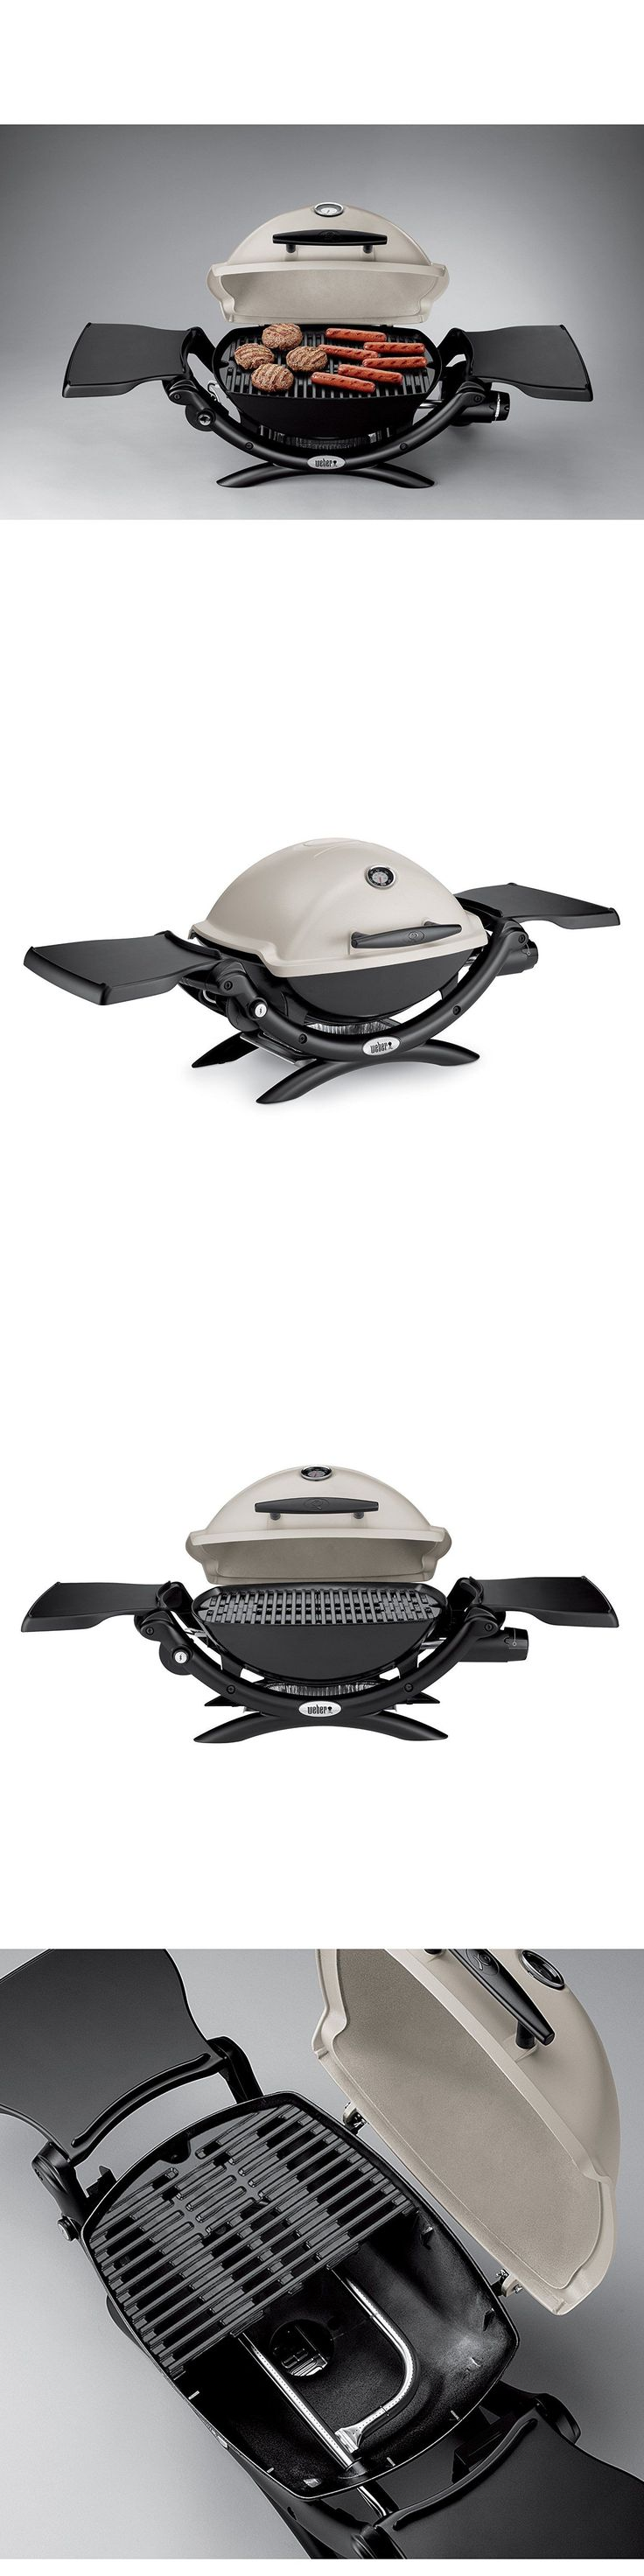 Barbecues Grills and Smokers 151621: Weber Q1200 Propane Portable Tabletop Gas Bbq Grill Titanium (51060001) Brand Nw -> BUY IT NOW ONLY: $184.99 on eBay!